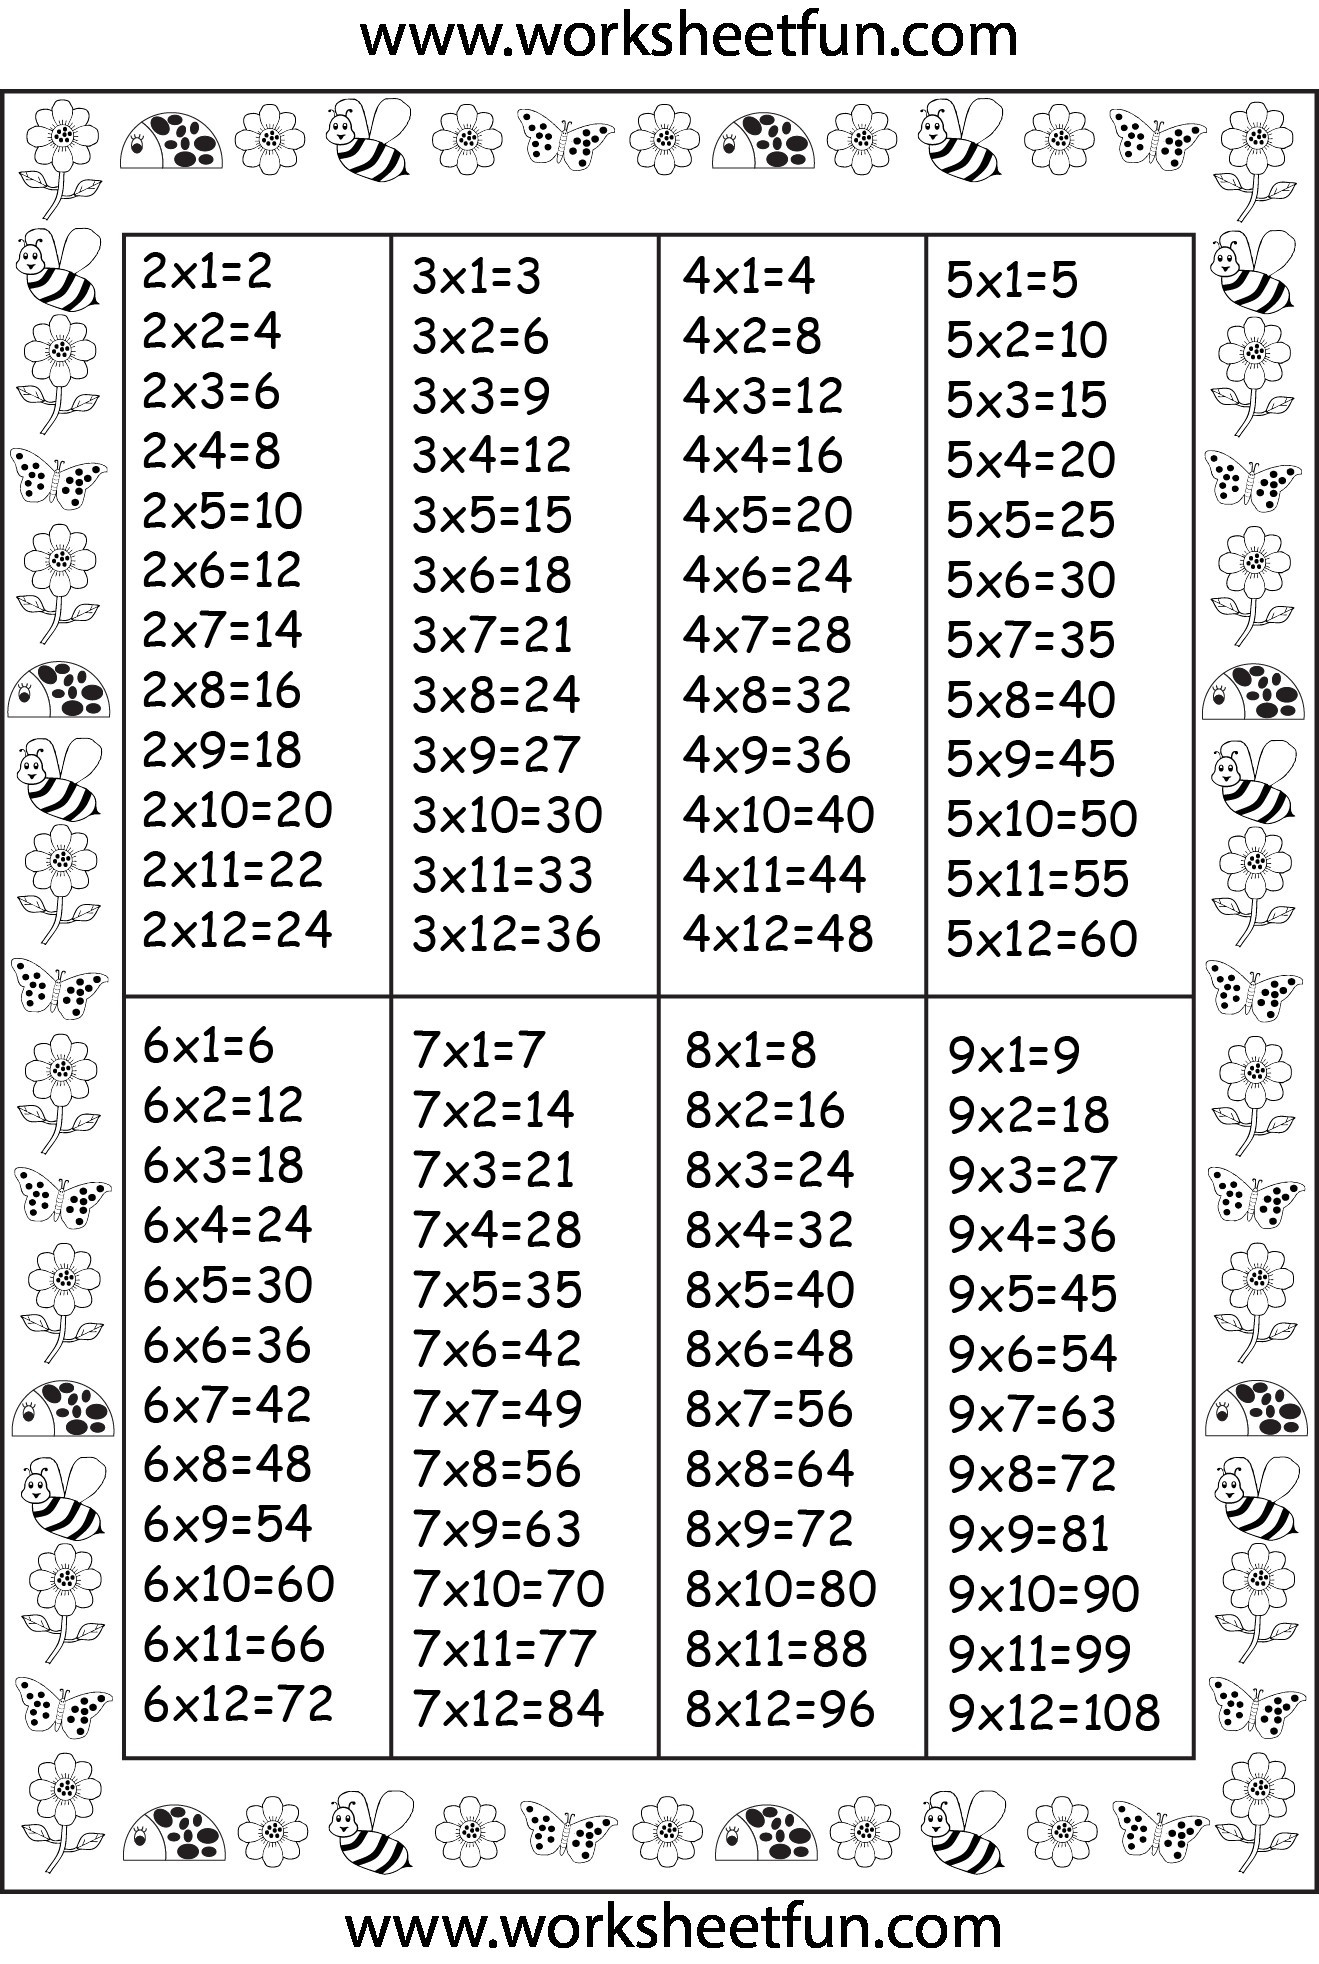 Multiplication Table Practice Worksheets Free Printable - Free Printable Multiplication Chart